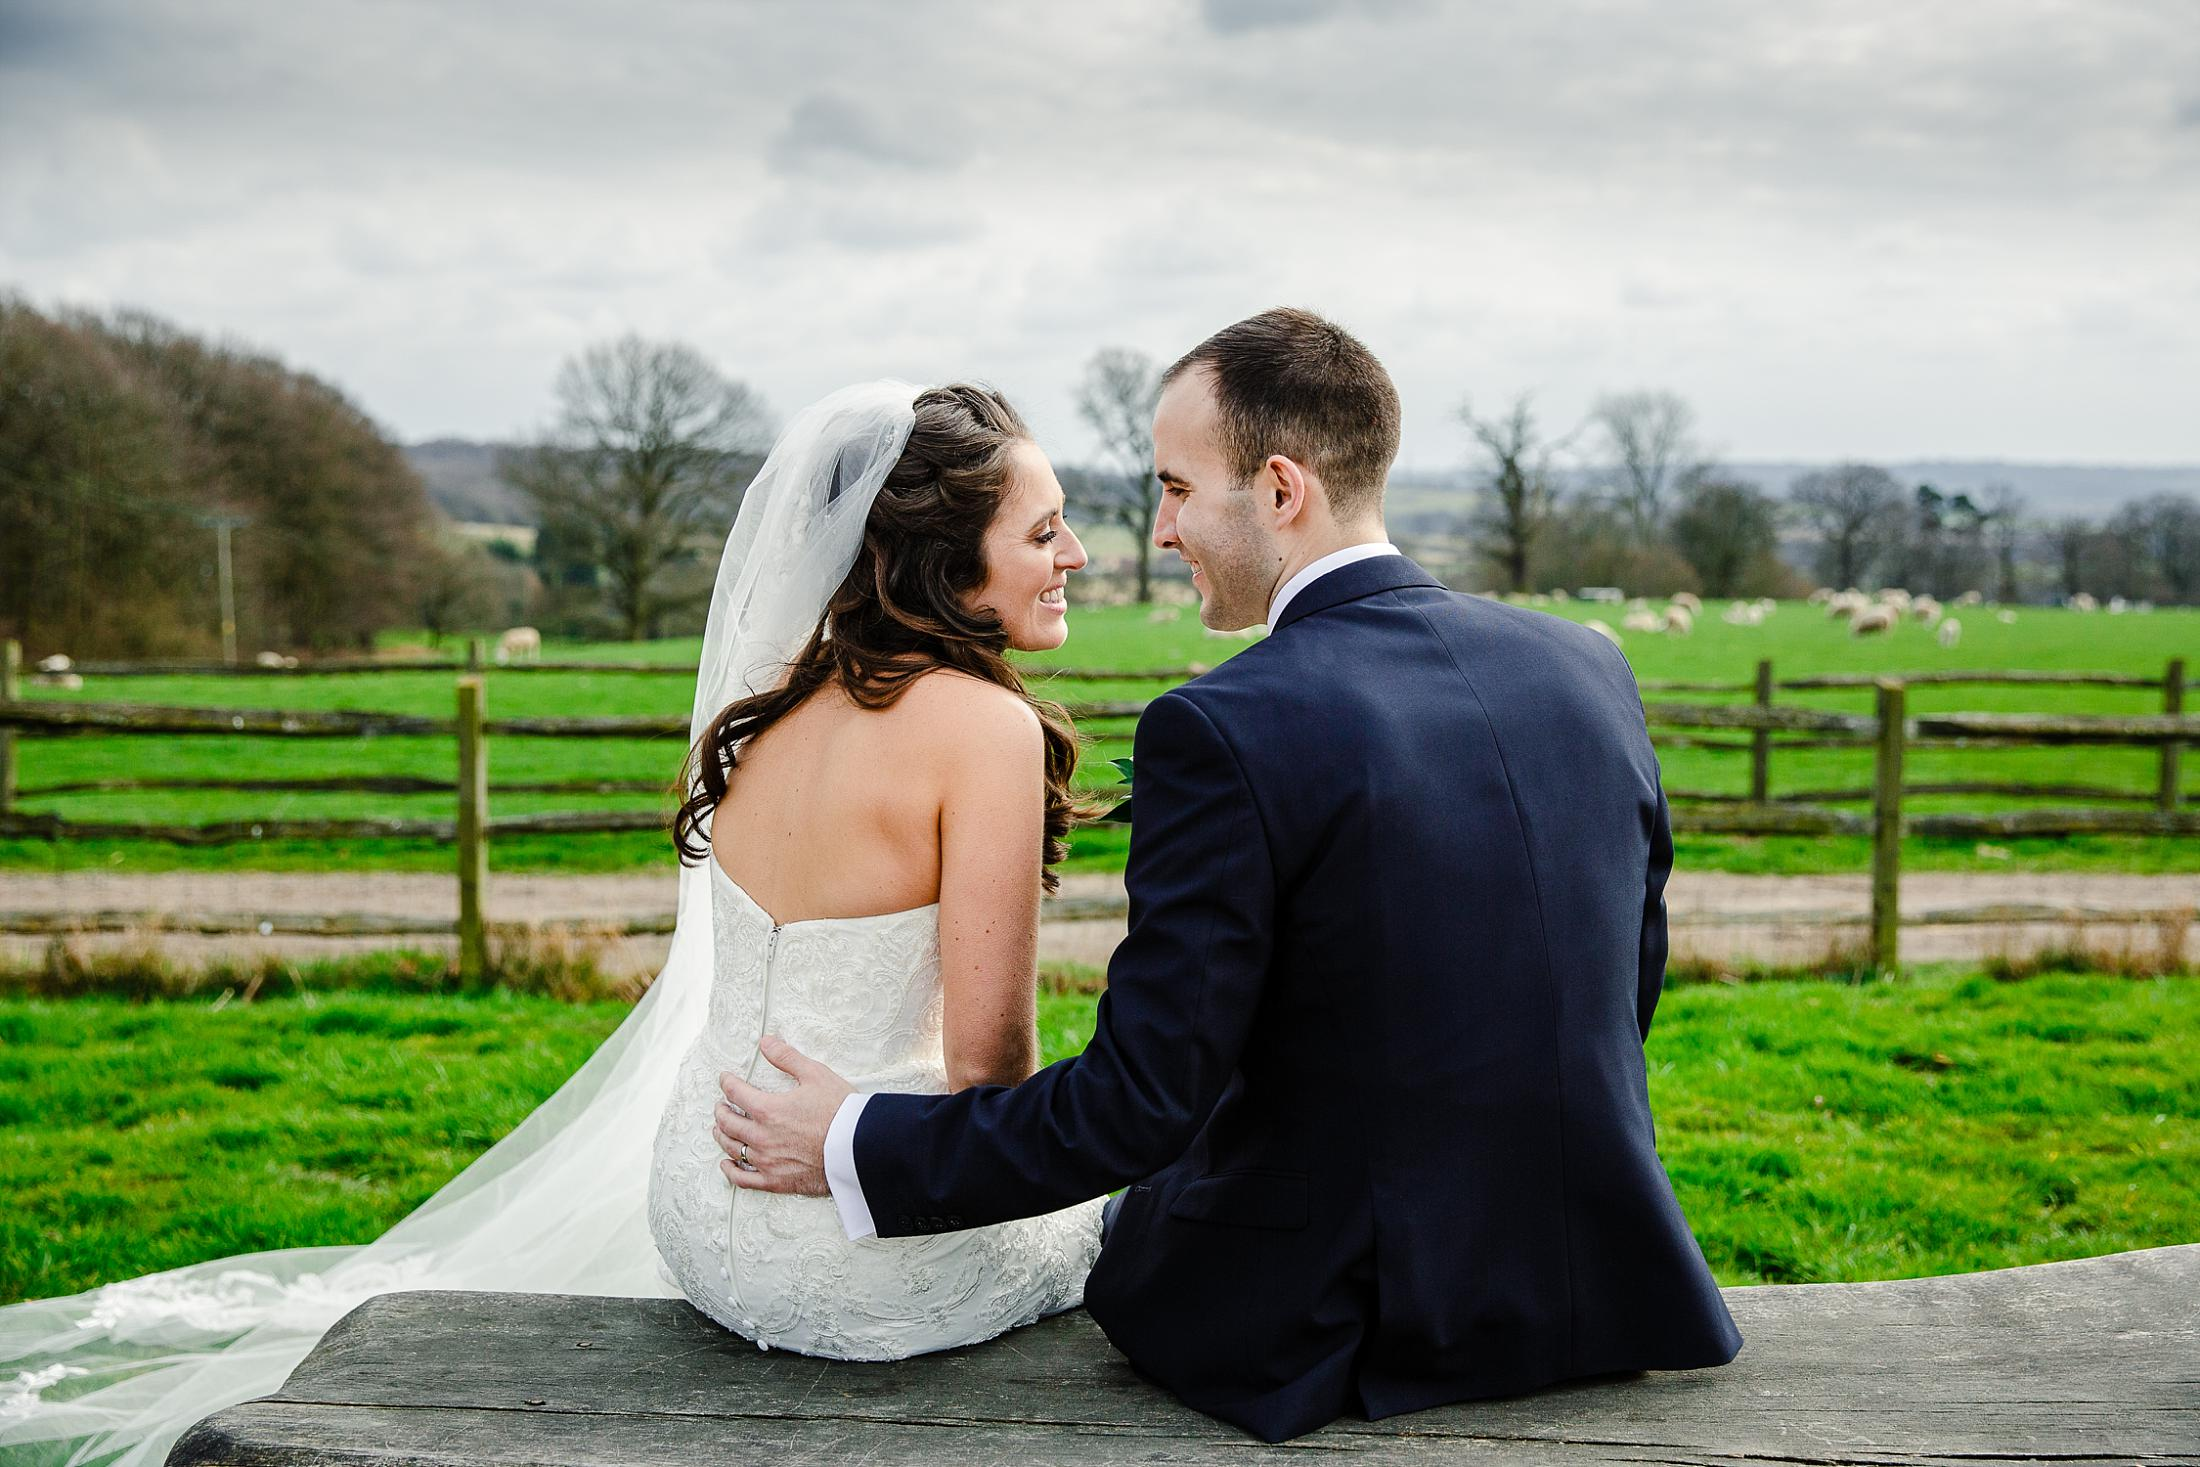 Gaynes Park Wedding Photographer_0080.jpg